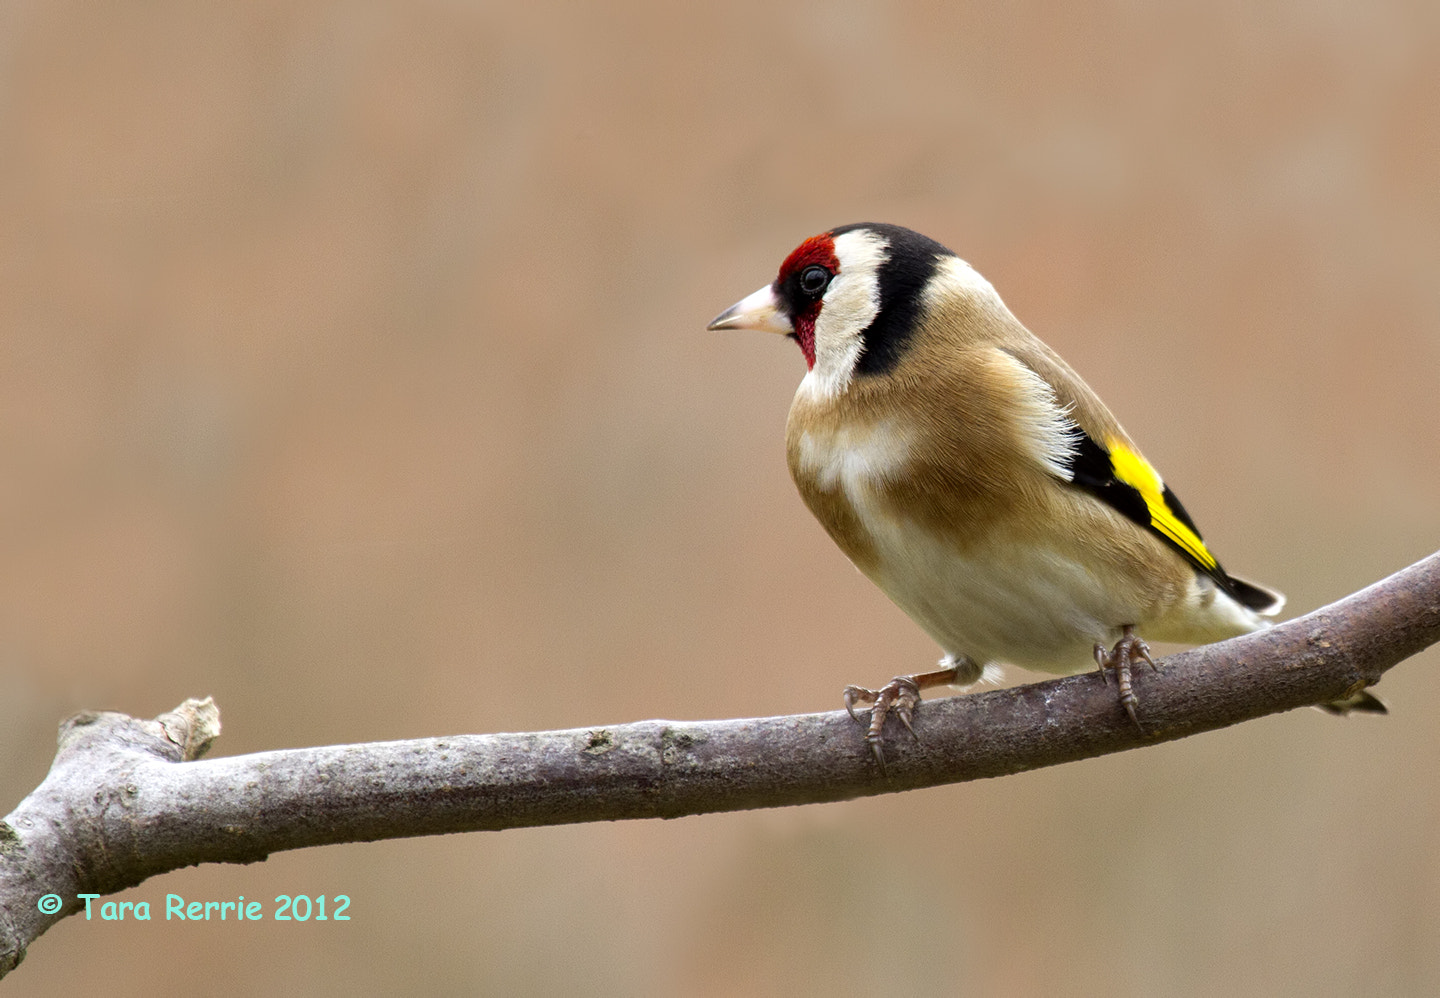 Photograph Goldfinch by Tara Rerrie on 500px